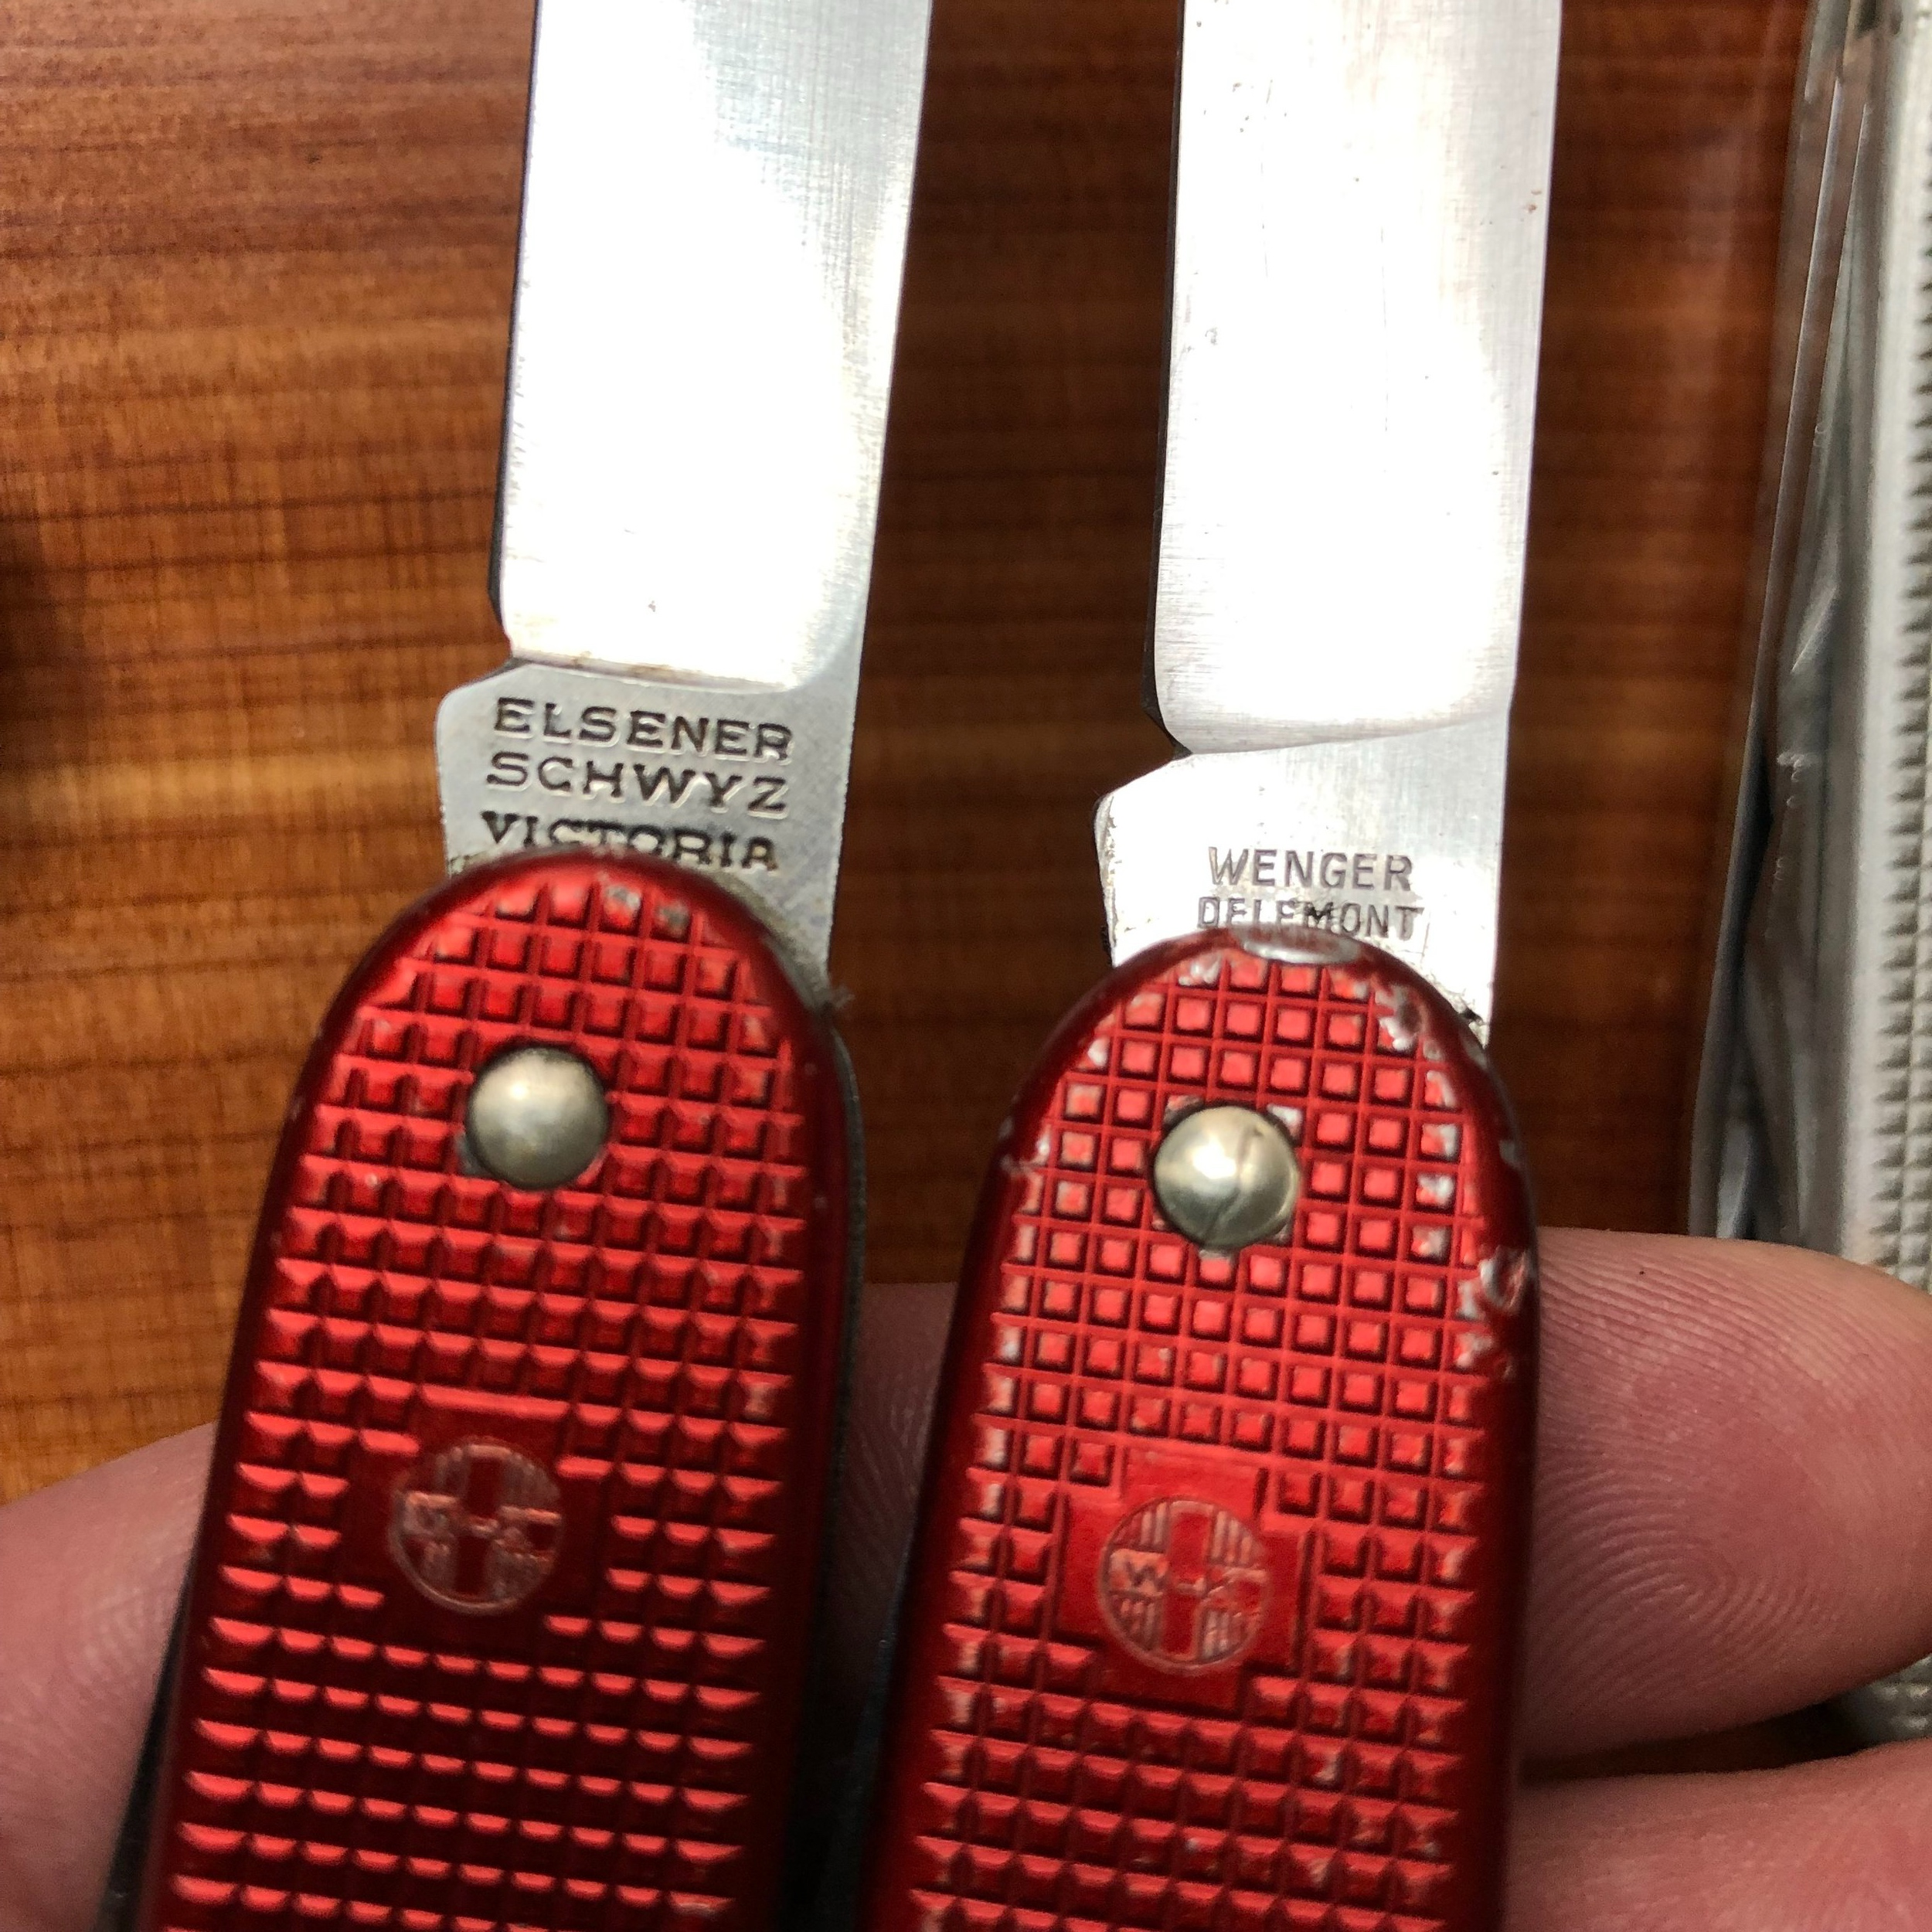 Tang stamps of Victorinox (L) and Wenger (R) version 1 SAKs.